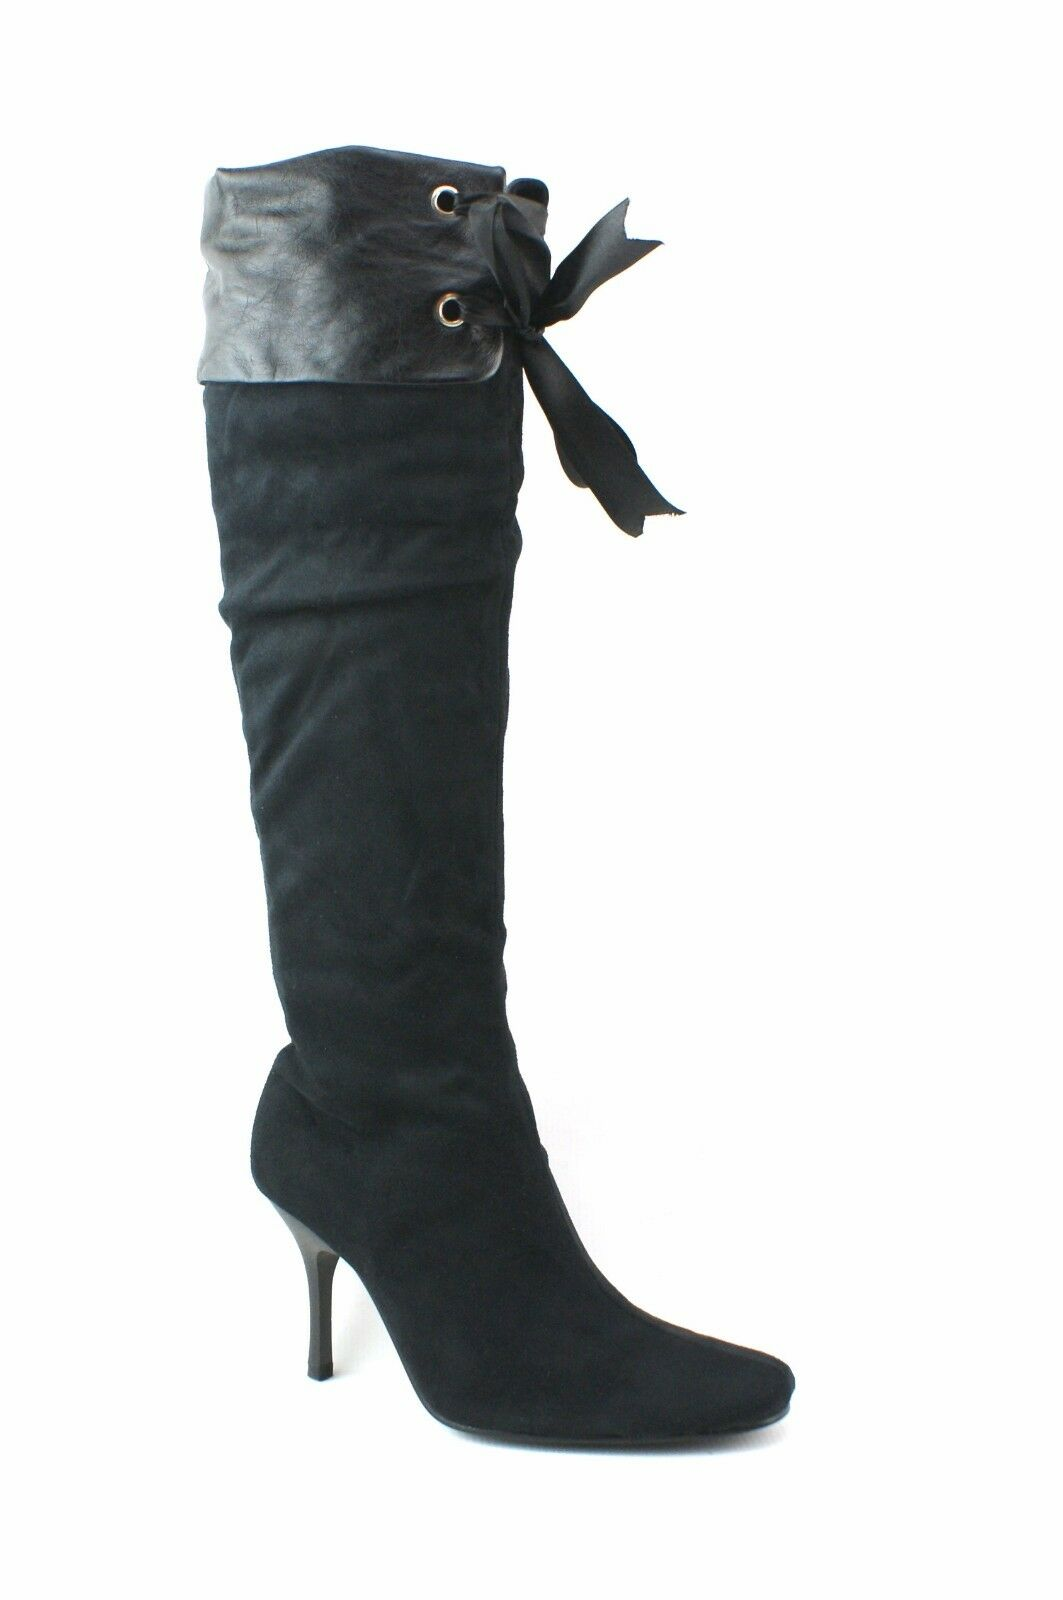 LADIES WOMENS BLACK KNEE BOOTS HIGH HIGH BOOTS HEEL PIRATE STYLE RIBBON CUFF SHOES SIZE b24d6e